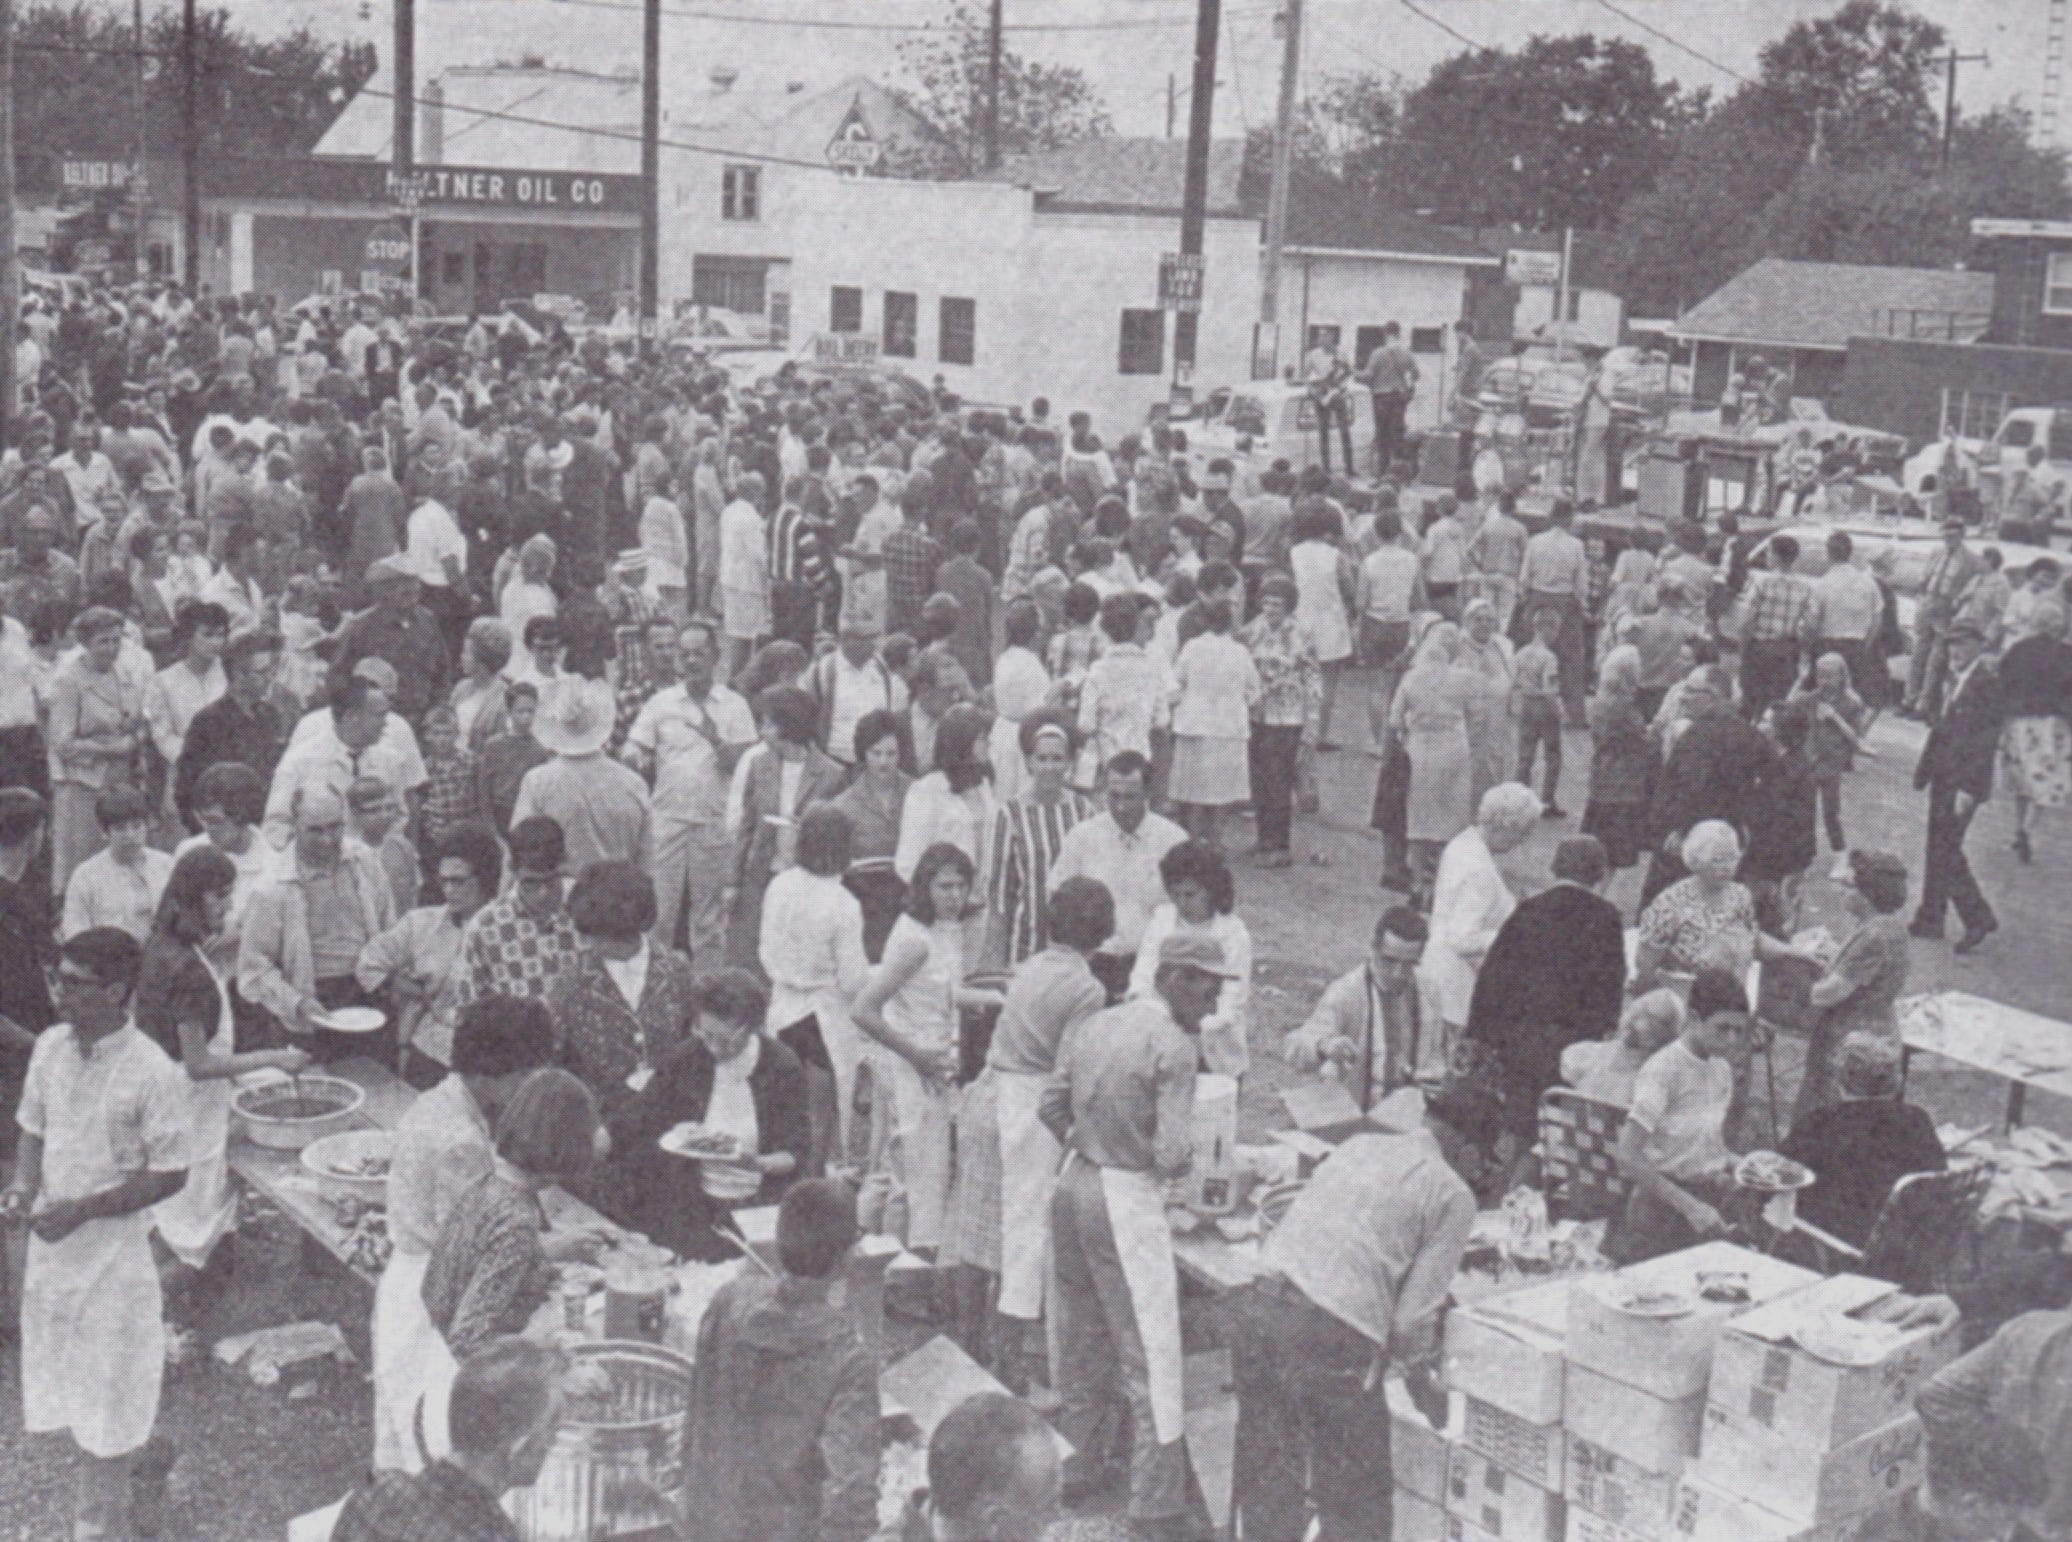 The Sucker Day crowd in 1968.  A vintage Sucker Days photo from the city of Nixa's collection.